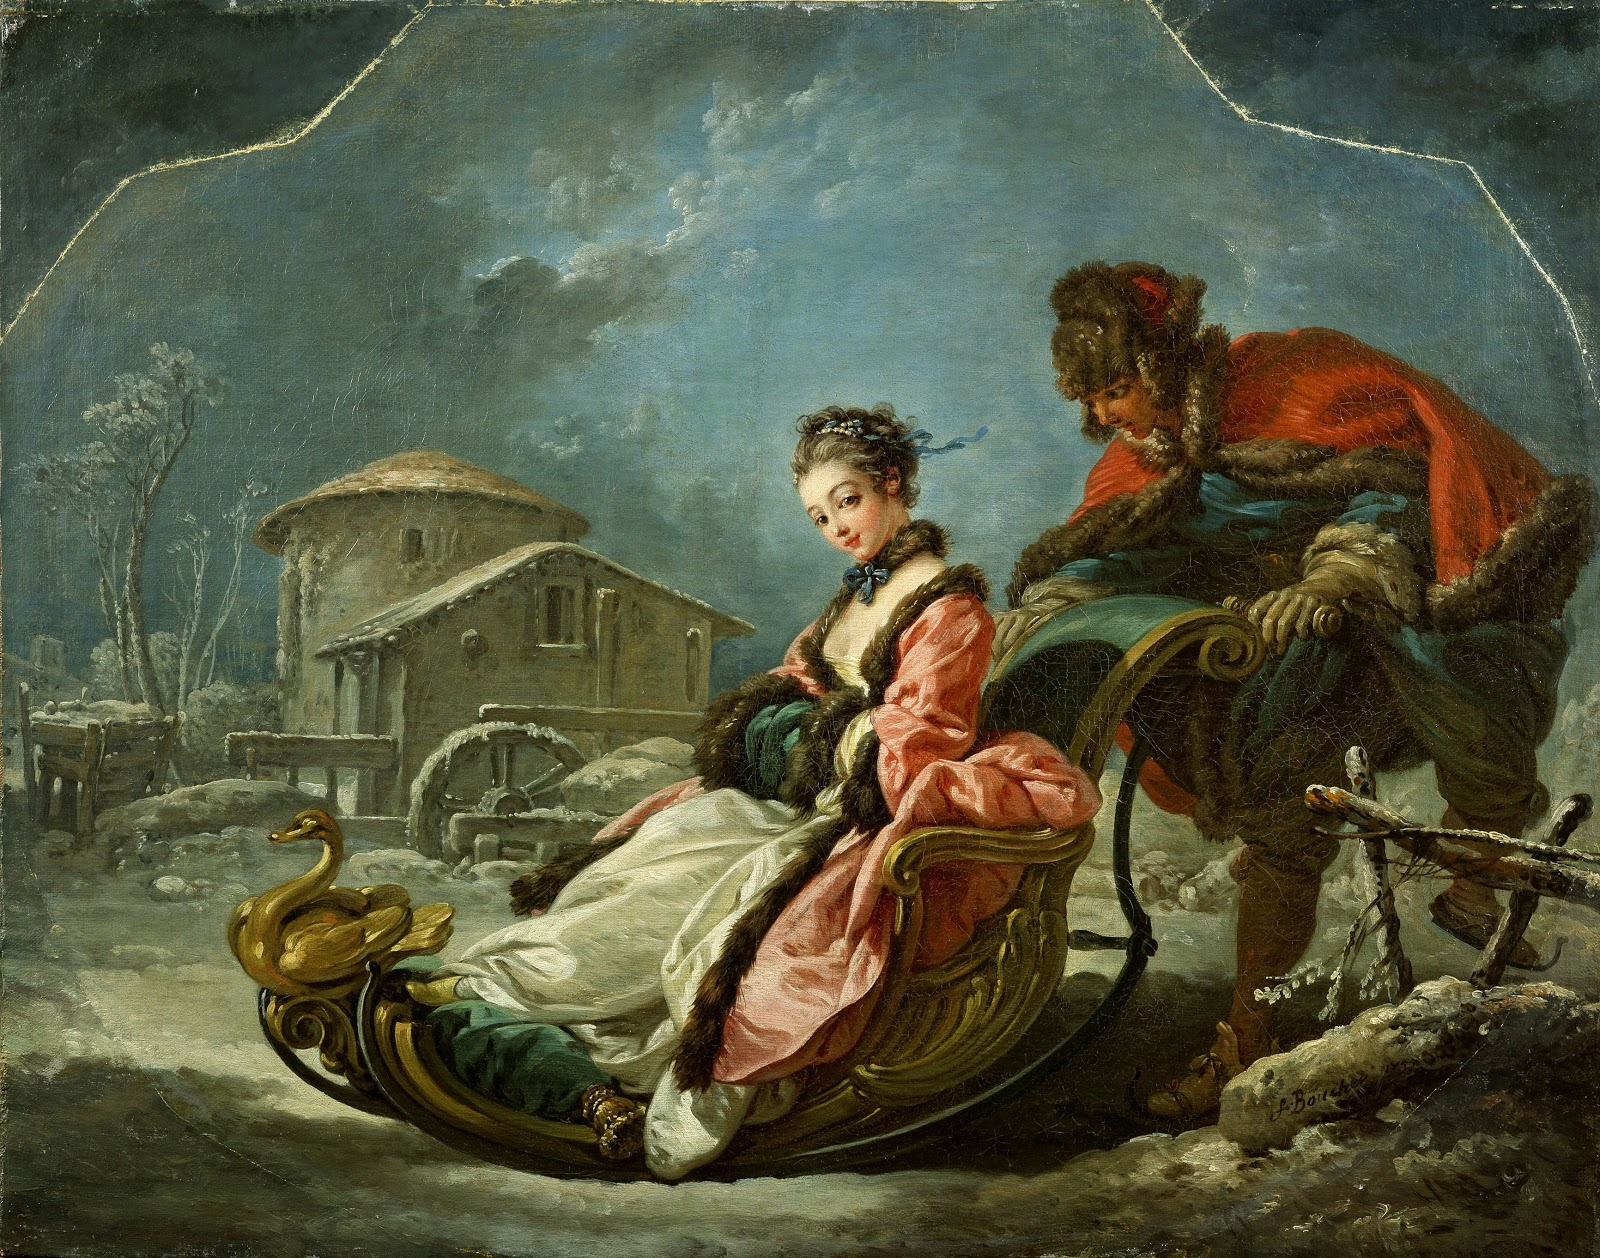 francois boucher Boucher, françois (1703-1770), french painter, noted for his pastoral and mythological scenes, whose work embodies the frivolity and sensuousness of the rococo style.